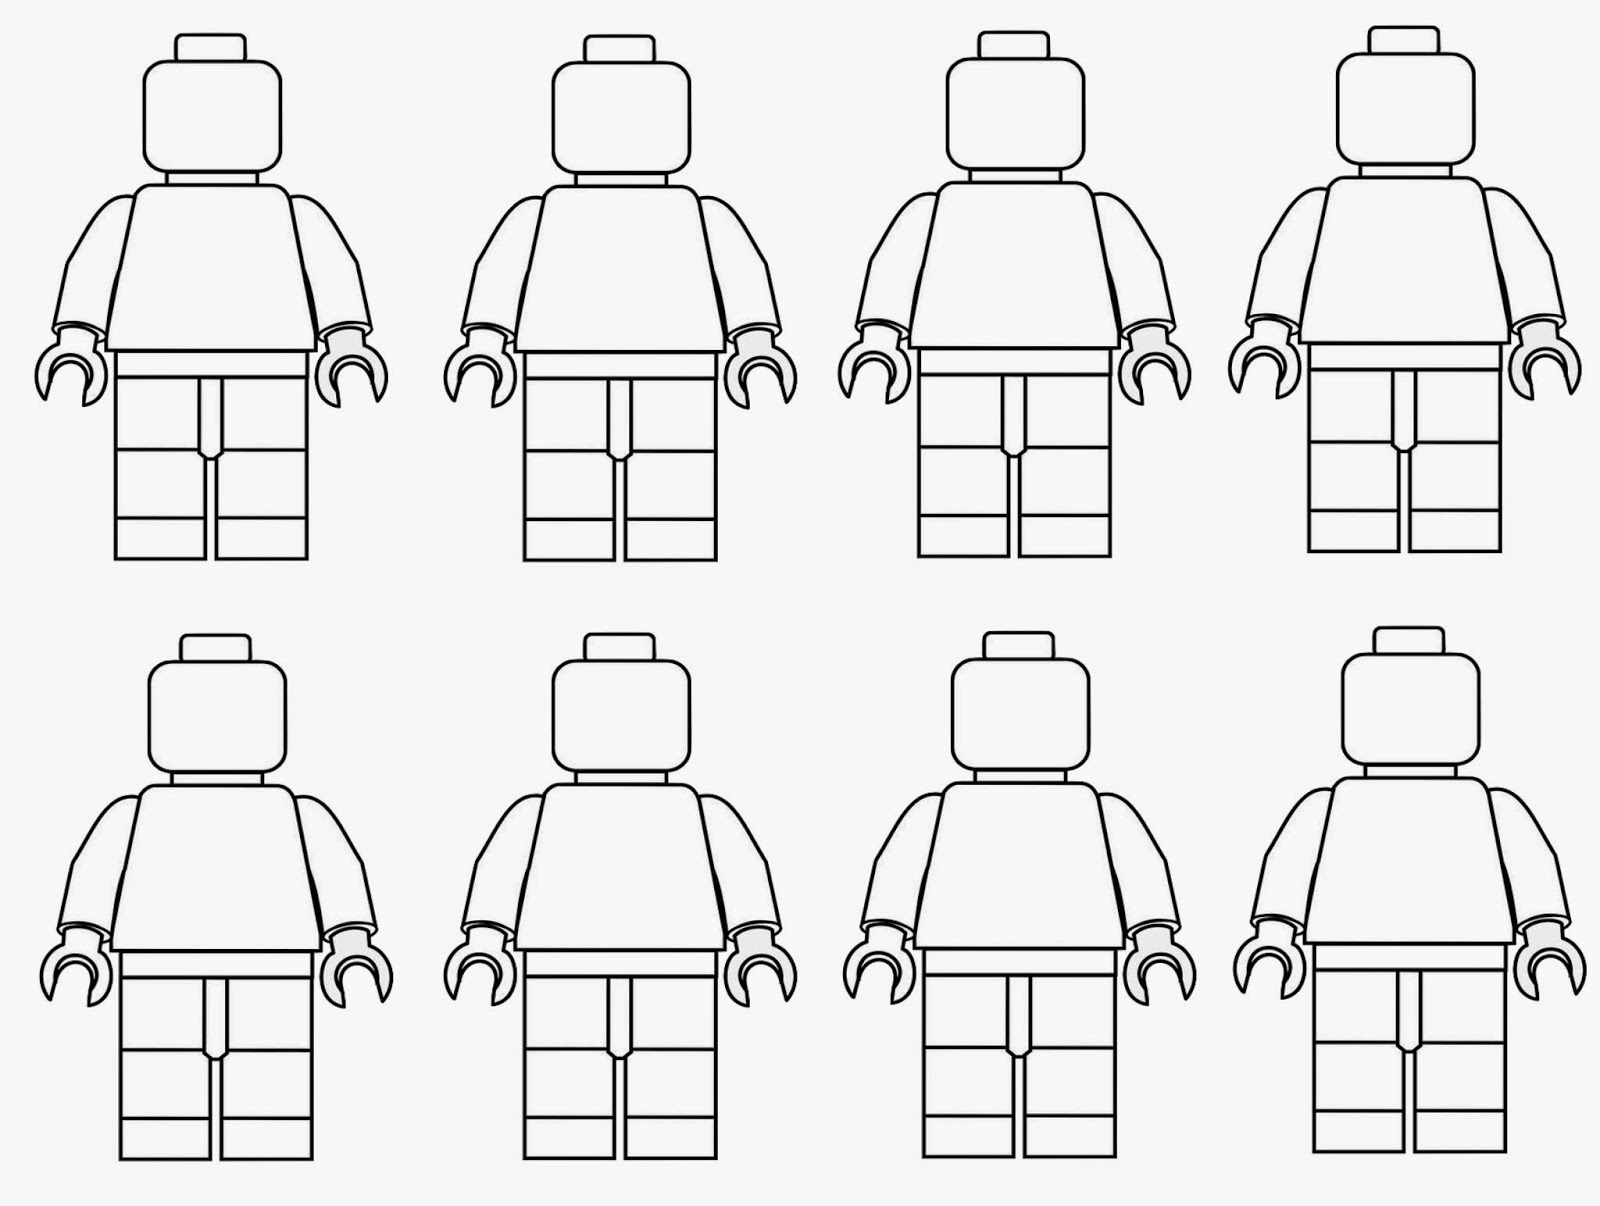 lego coloring sheets printables lego men coloring page sheets coloring lego printables